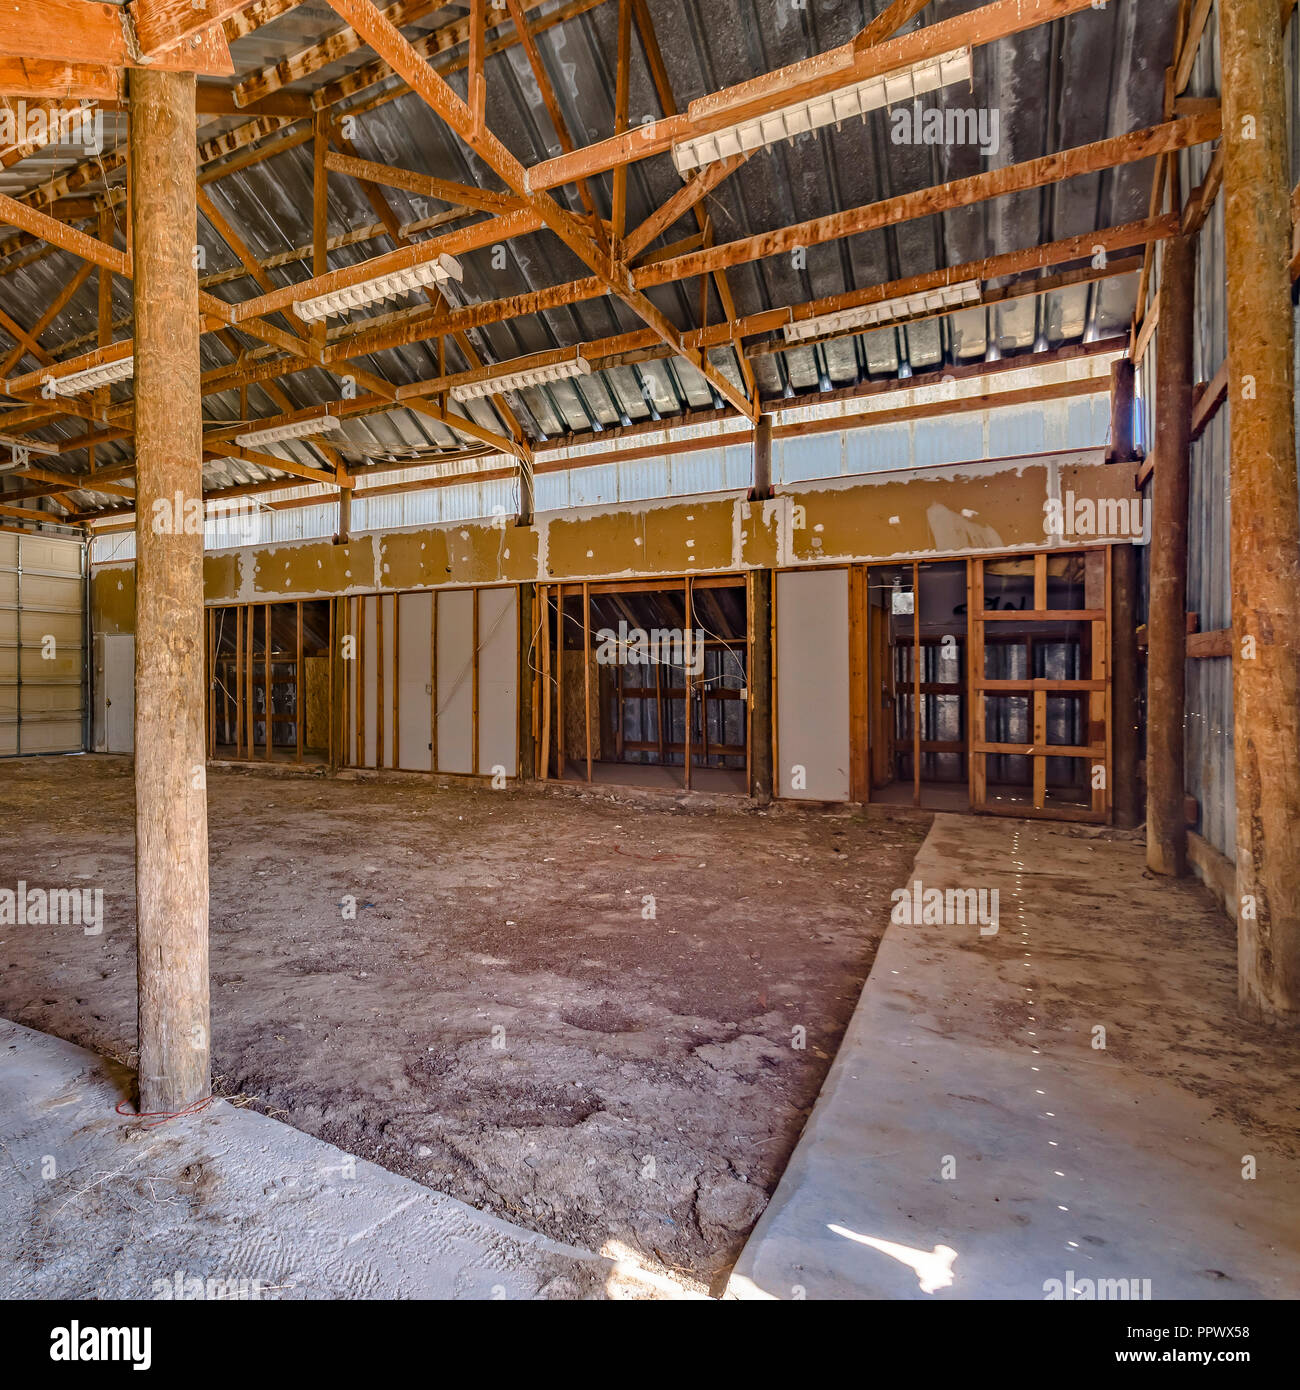 Interior view of an empty aged barn - Stock Image